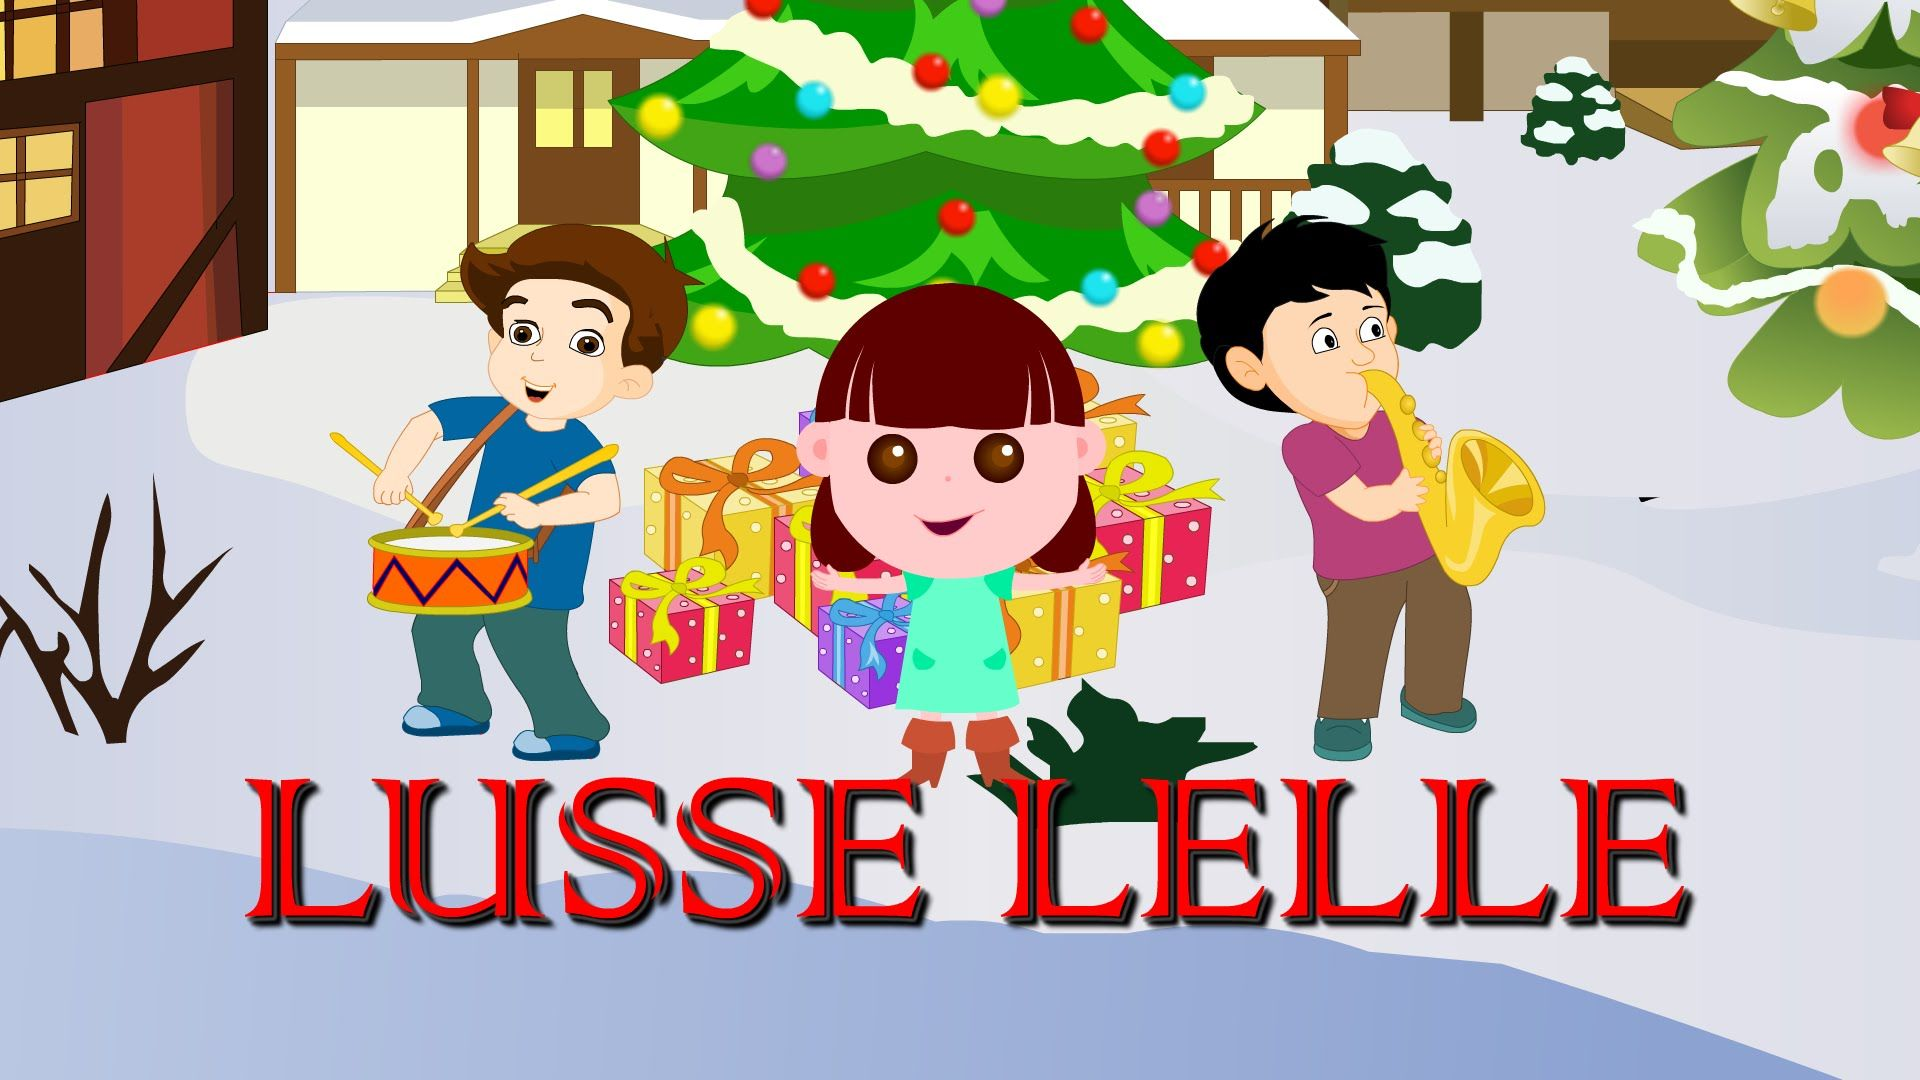 lusse lelle julsng svenska julsnger swedish christmas songs - Swedish Christmas Songs